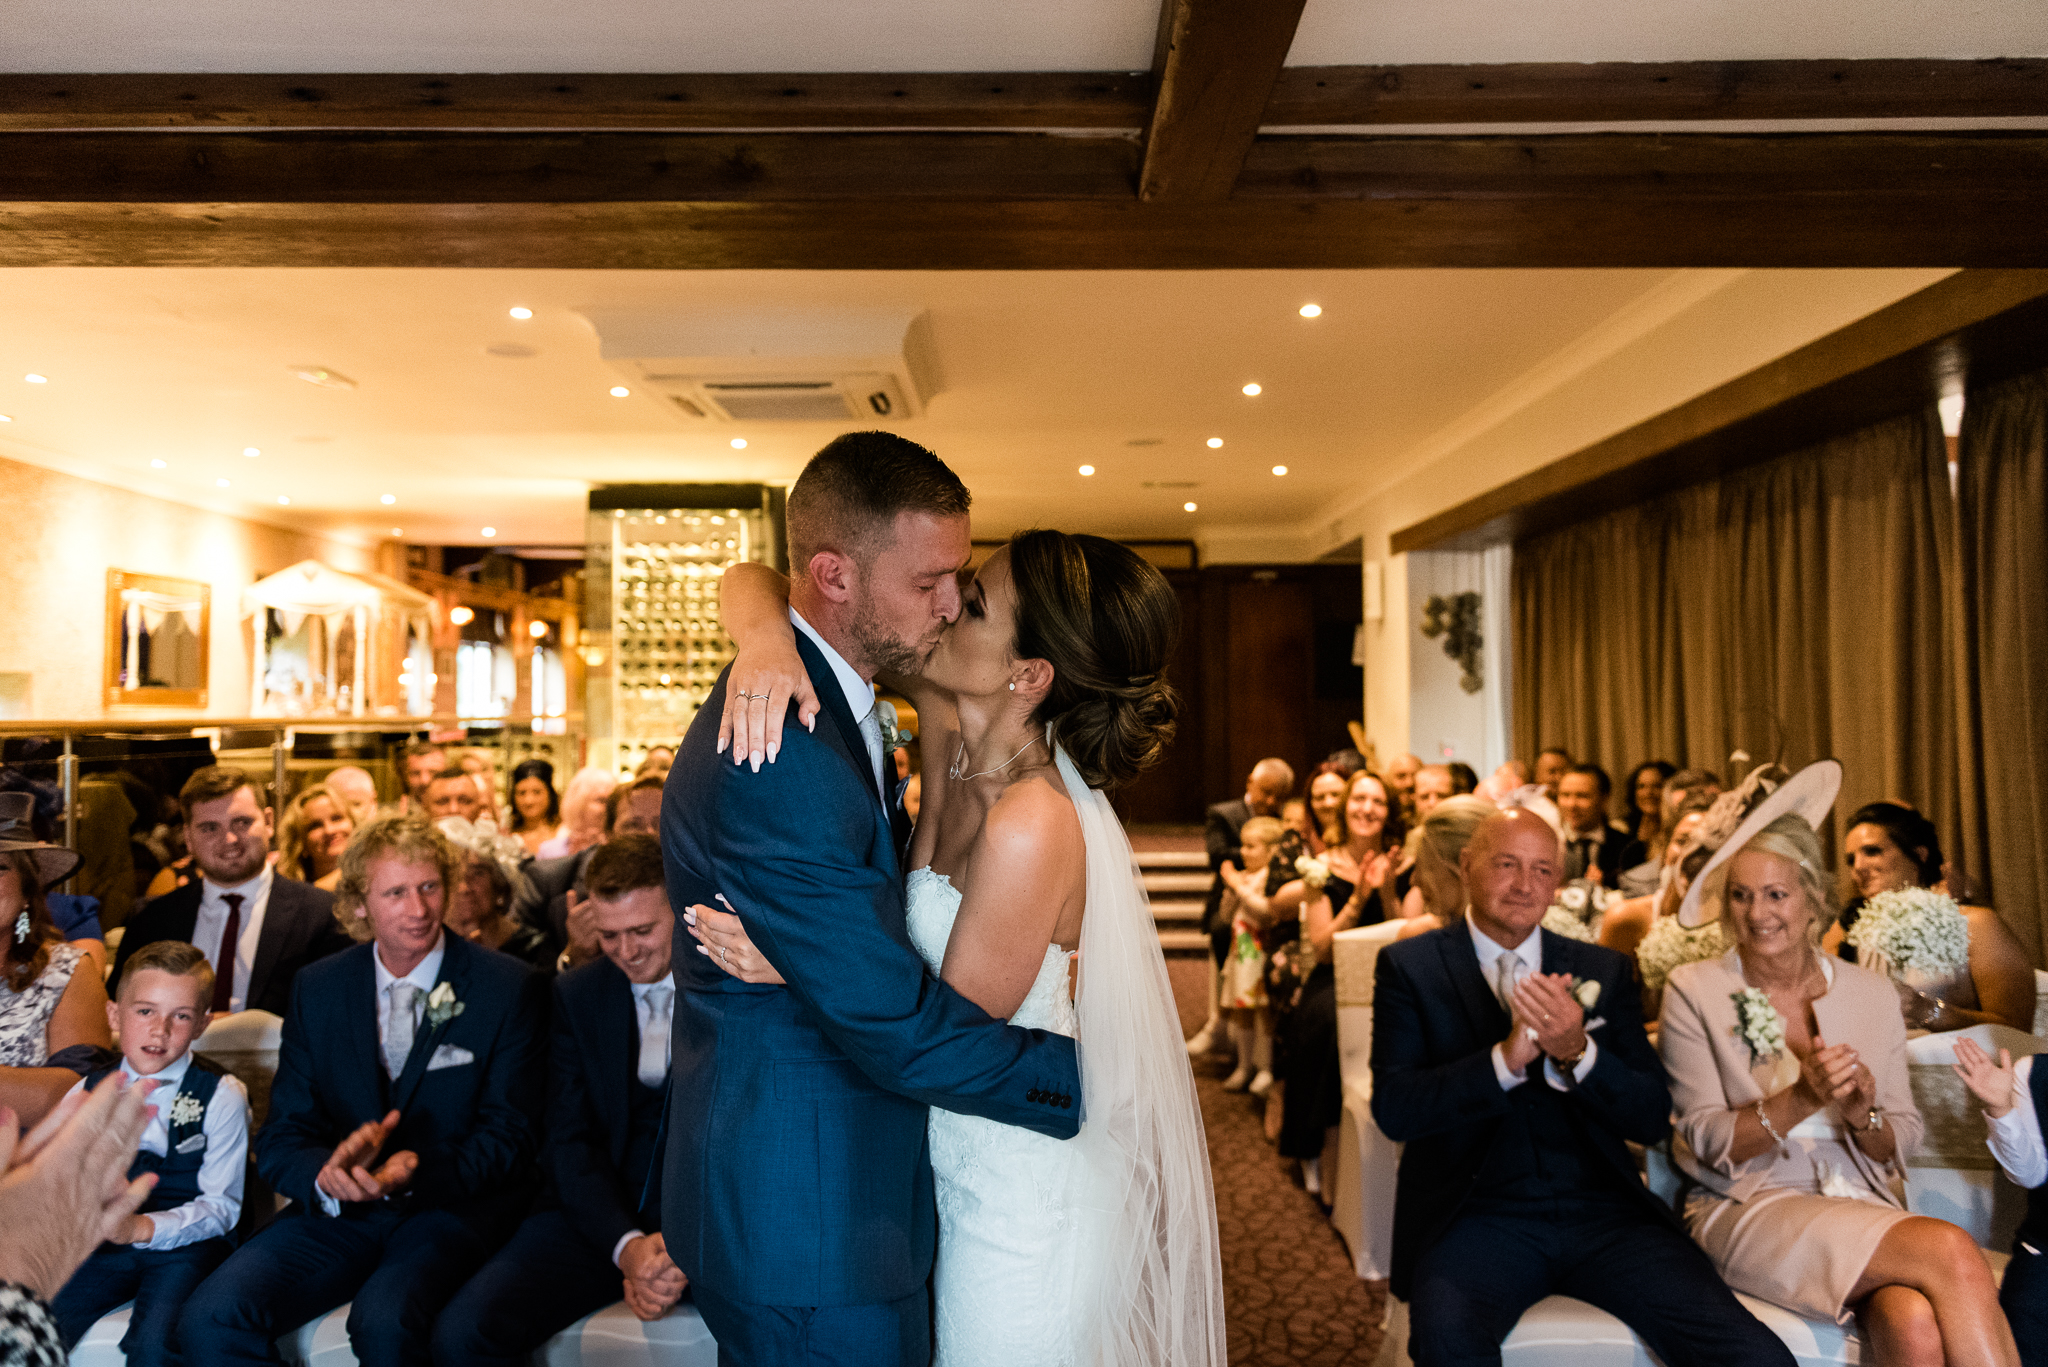 Staffordshire Moorlands Documentary Wedding Photography at The Three Horseshoes, Blackshaw Moor - Jenny Harper-22.jpg